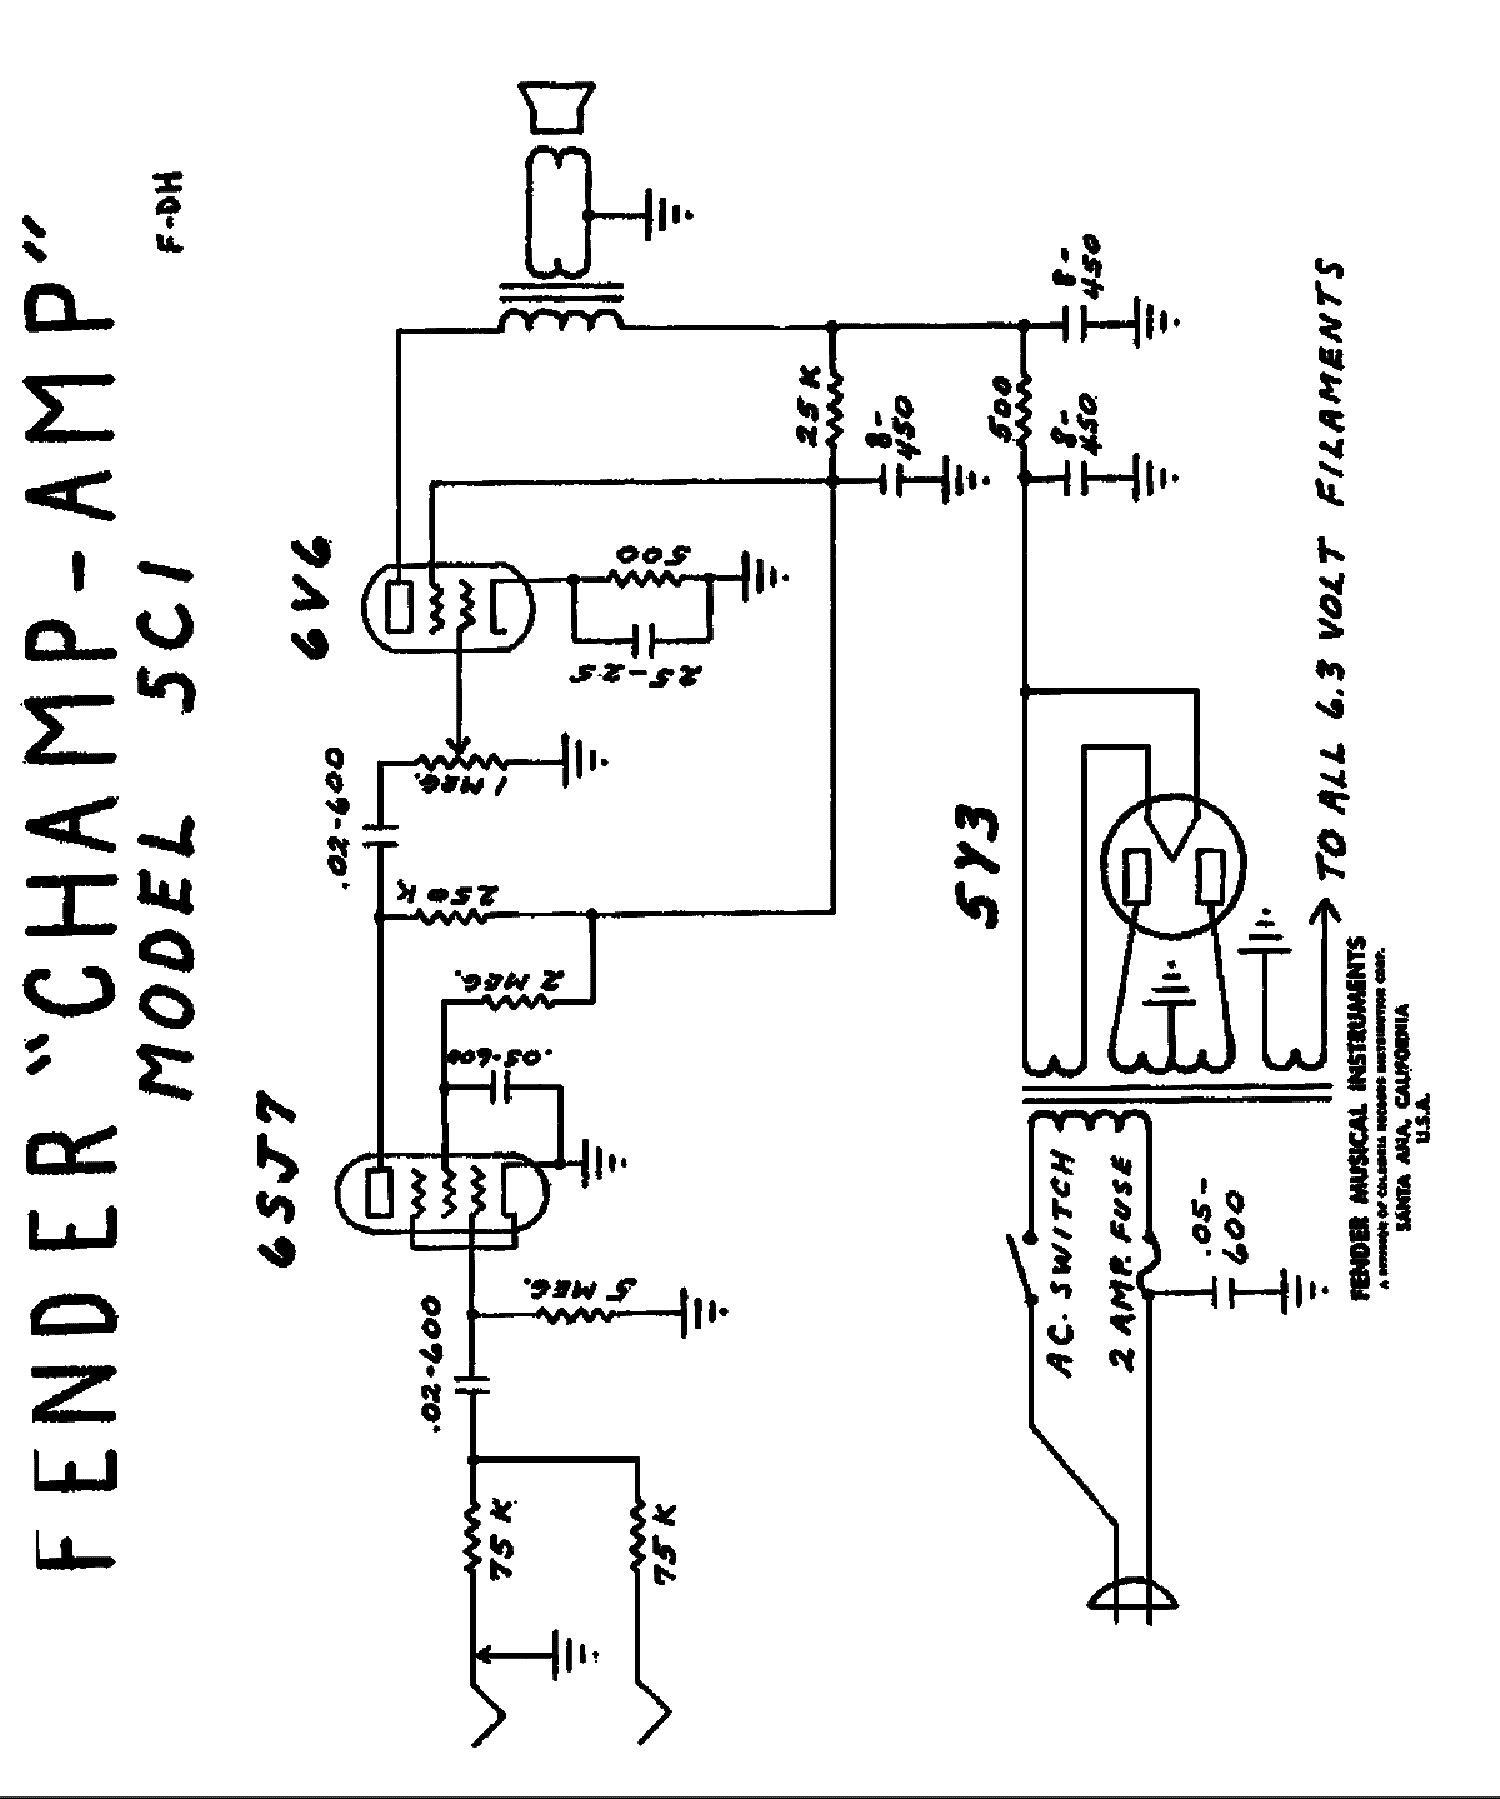 FENDER CHAMP-5F1 Service Manual free download, schematics